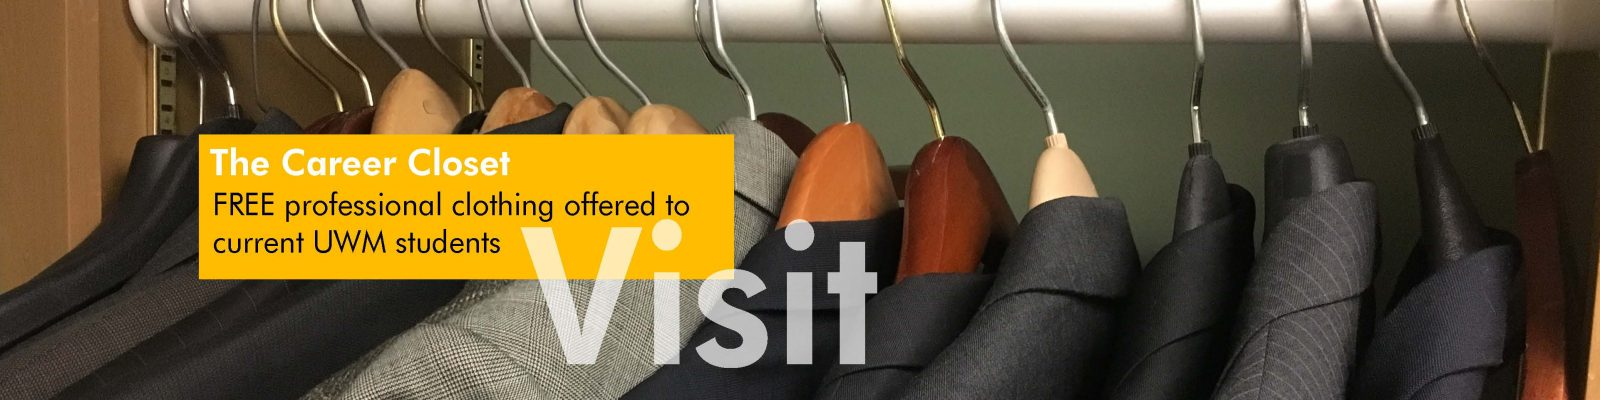 Visit The Career Closet: Free professional clothing offered to current UWM students